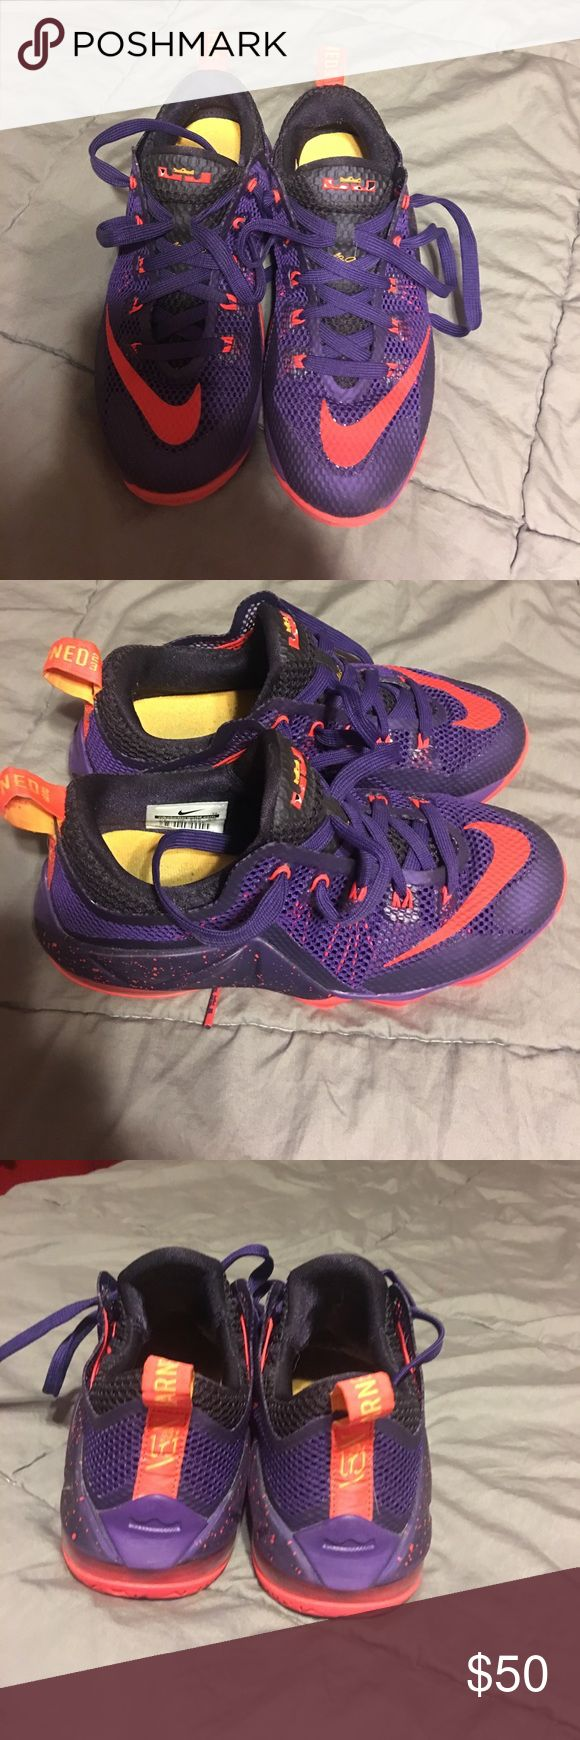 Boys Nike KD sneaker- 3.5Y Boys Nike KD sneaker- 3.5Y. Great condition. Nike Shoes Sneakers